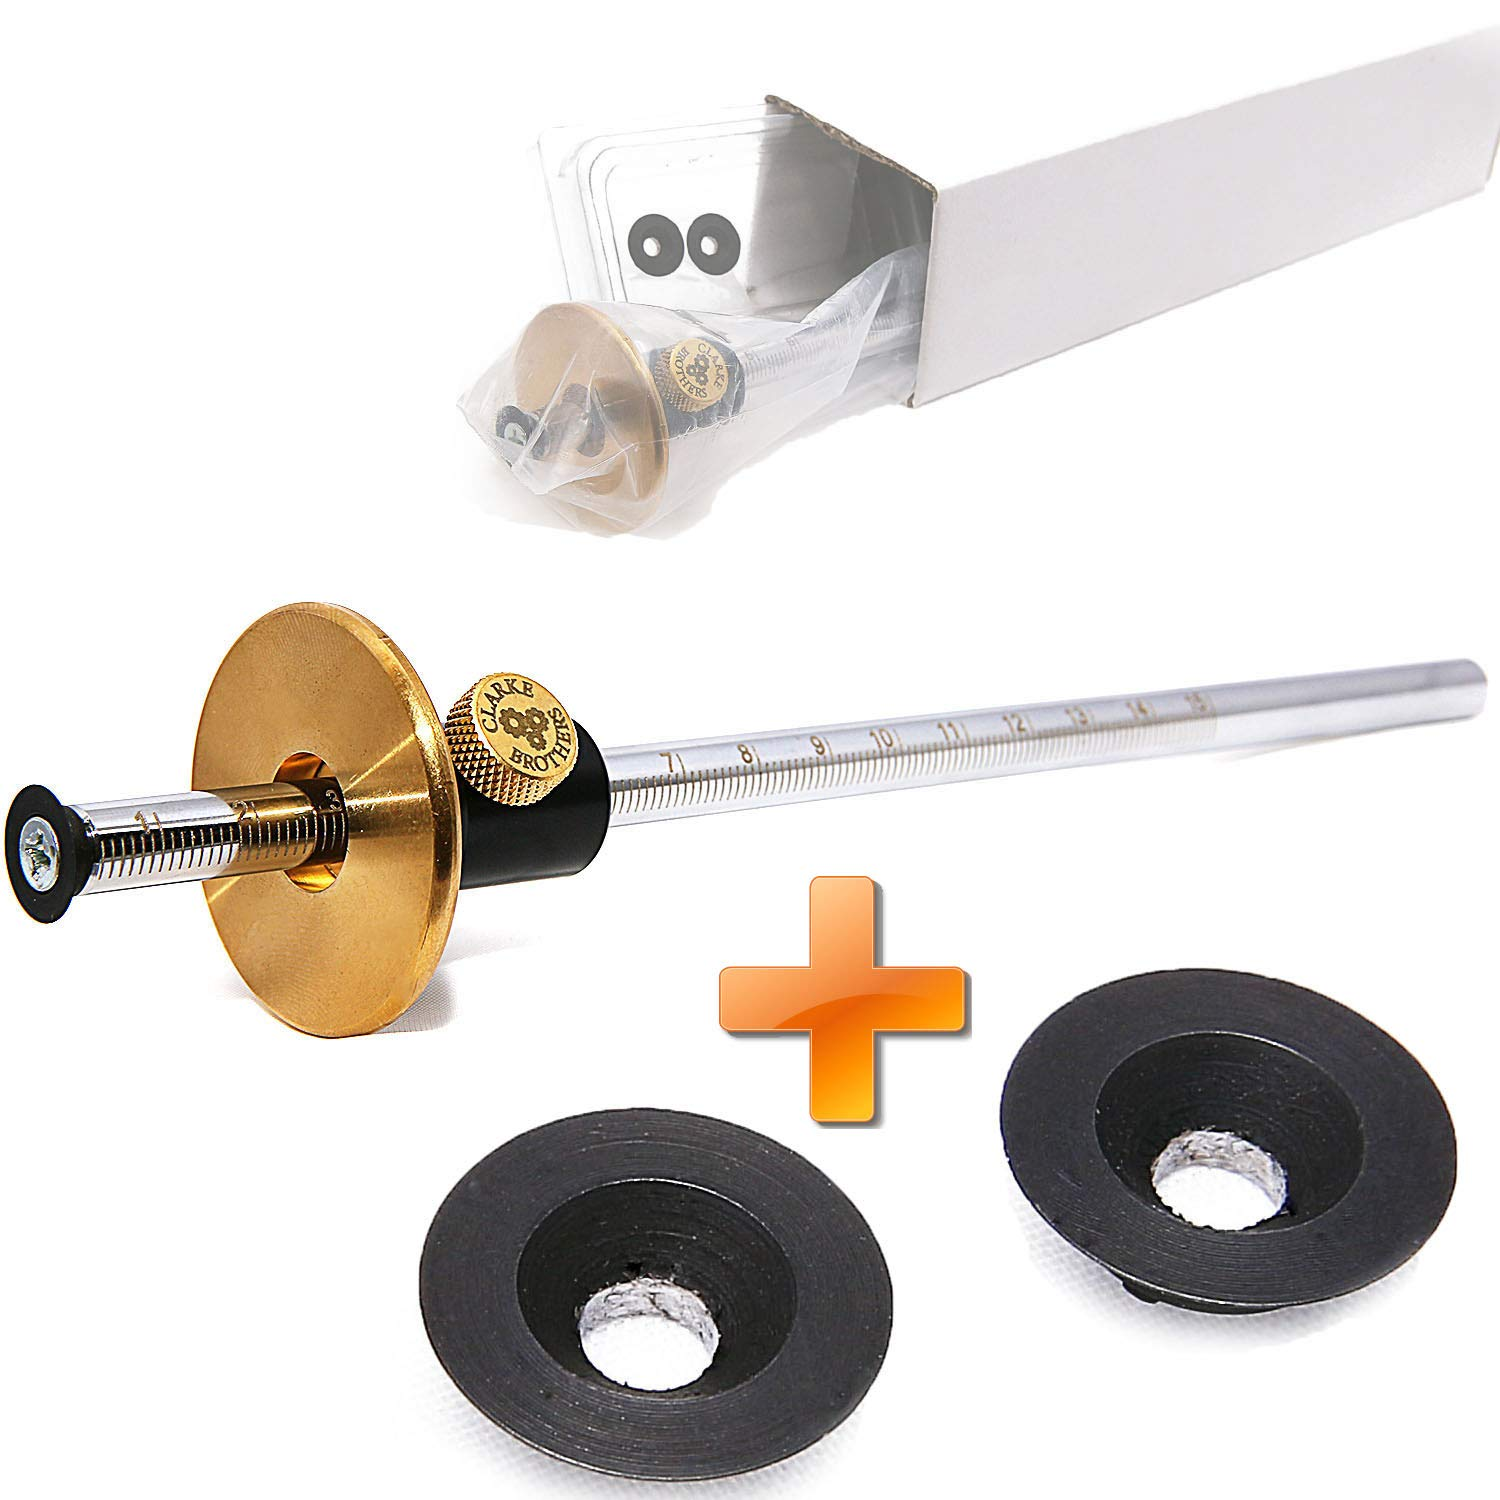 Wheel Marking Gauge woodworking tool set with 2 extra Cutter wheels, Graduated Inch and mm scale wmg 8''